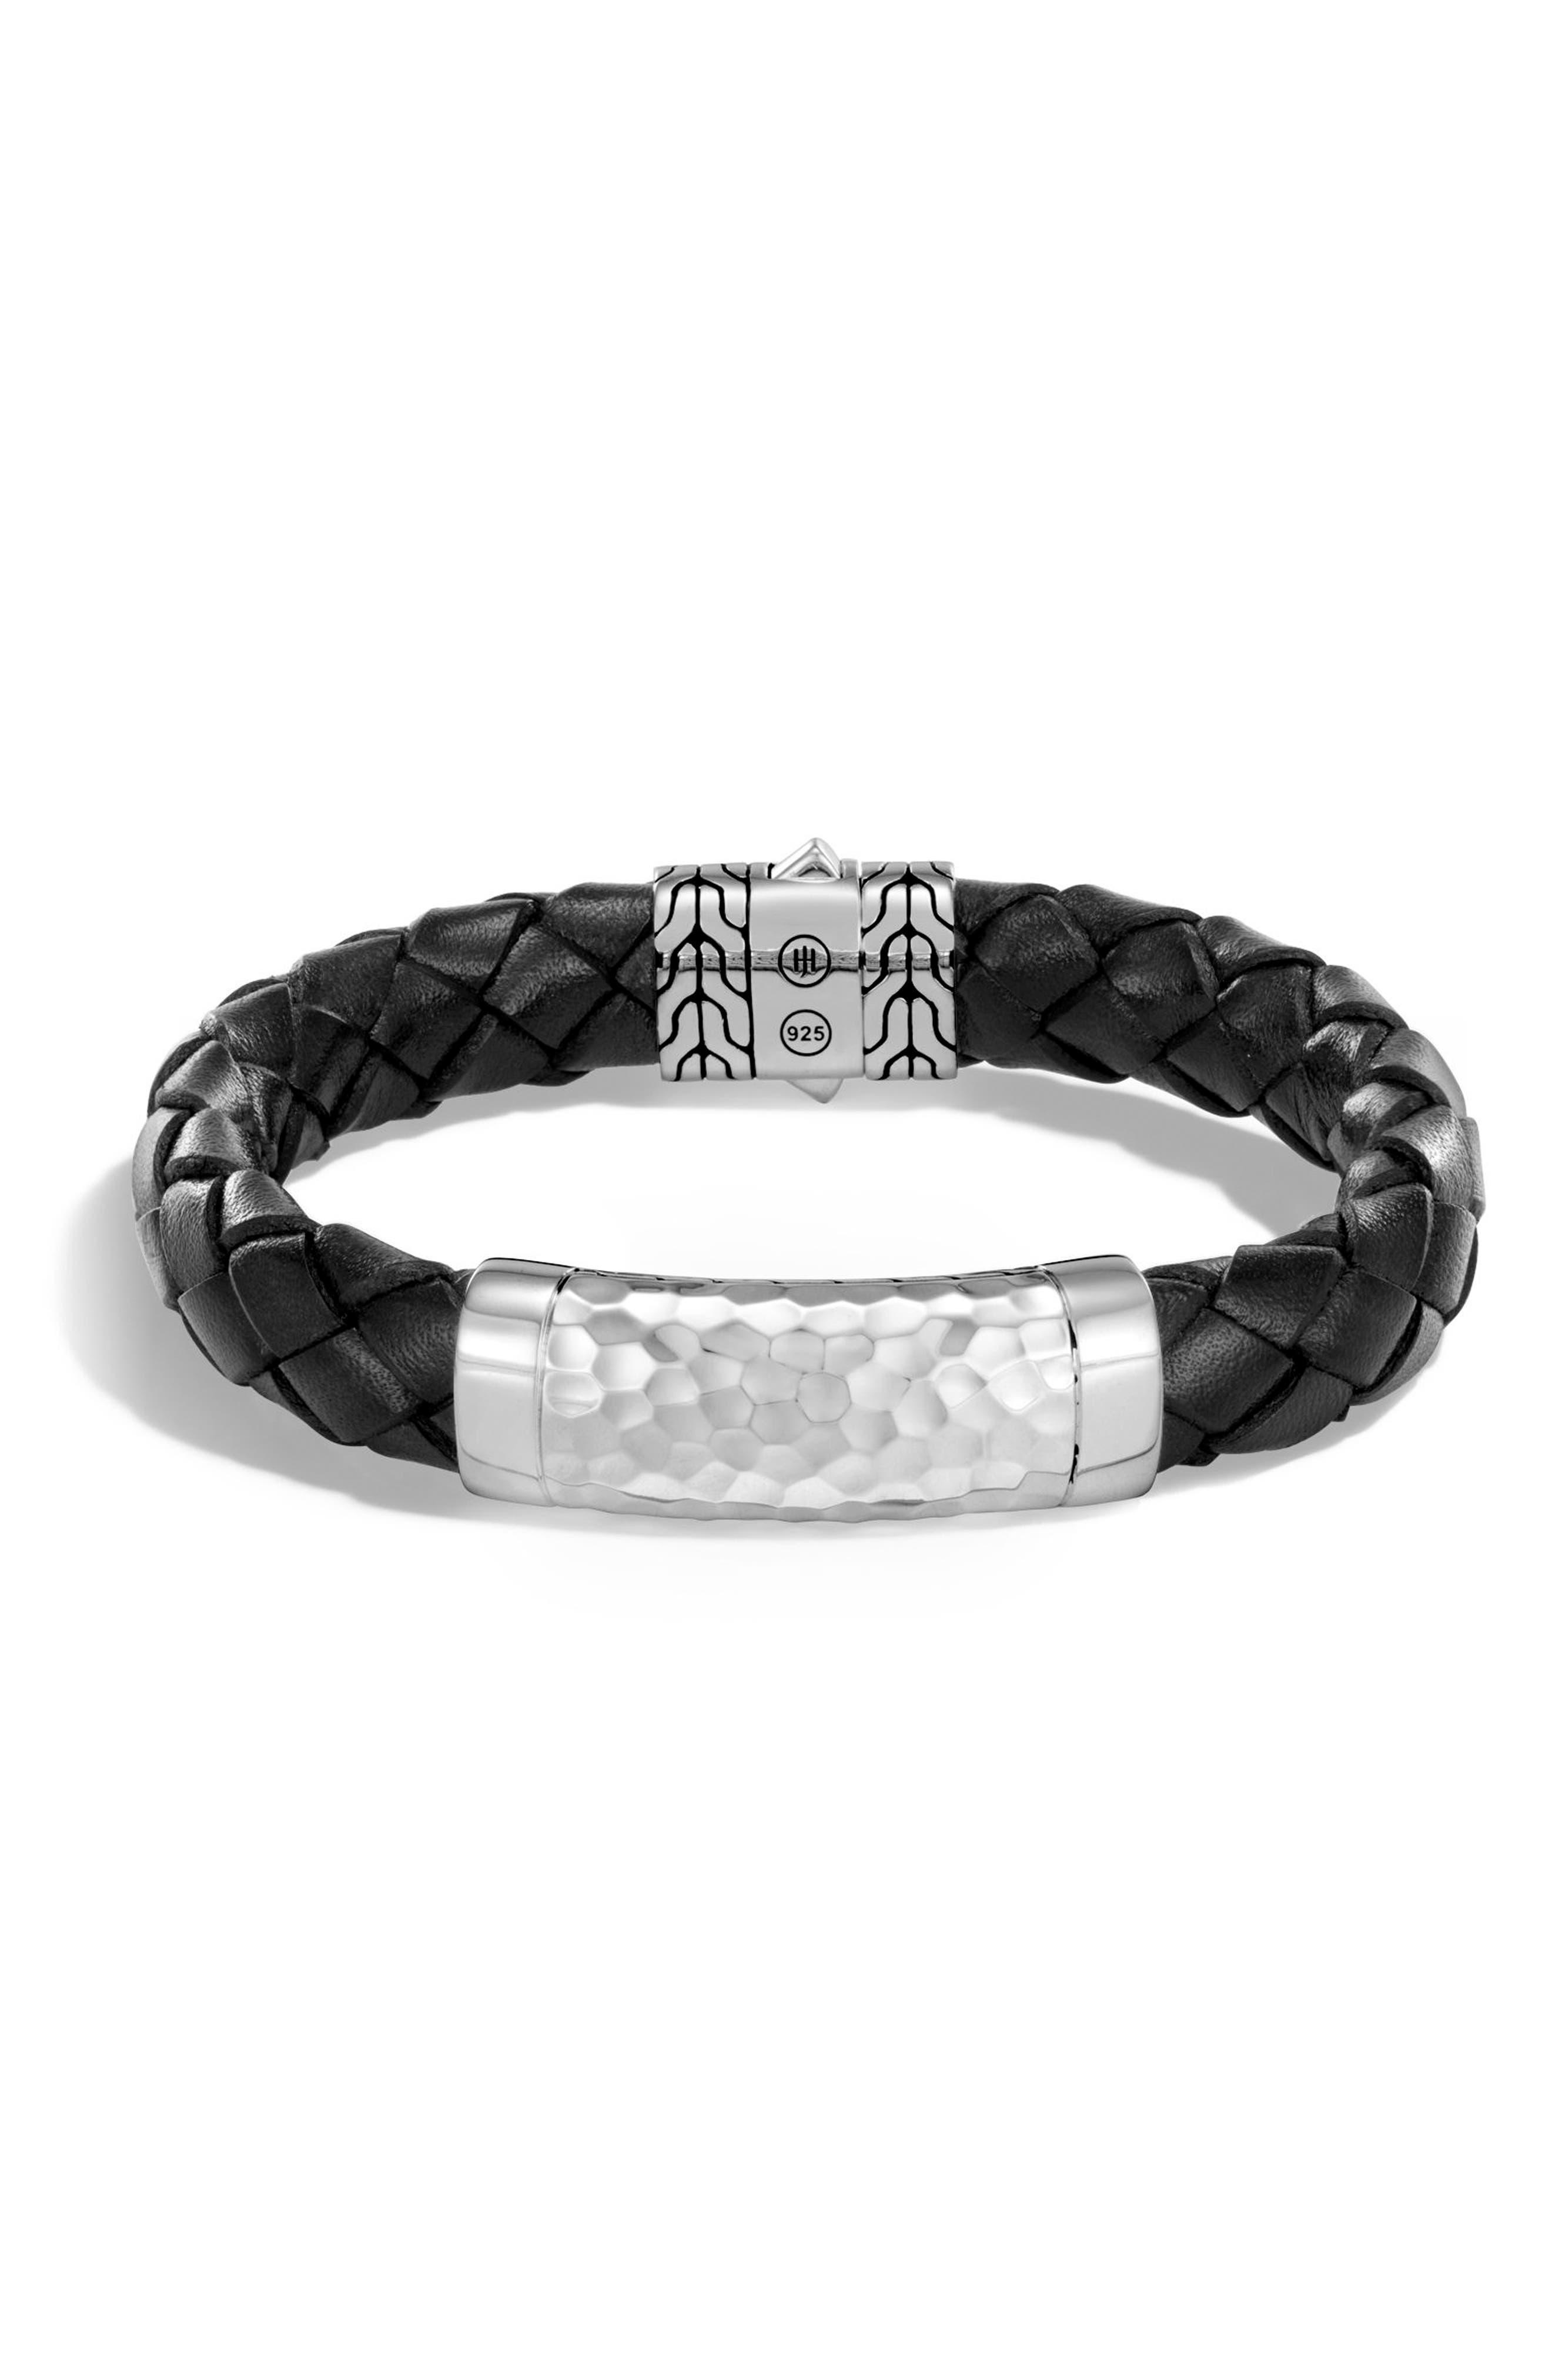 Classic Leather Chain Hammered Silver Large Bracelet,                             Main thumbnail 1, color,                             SILVER/ BLACK